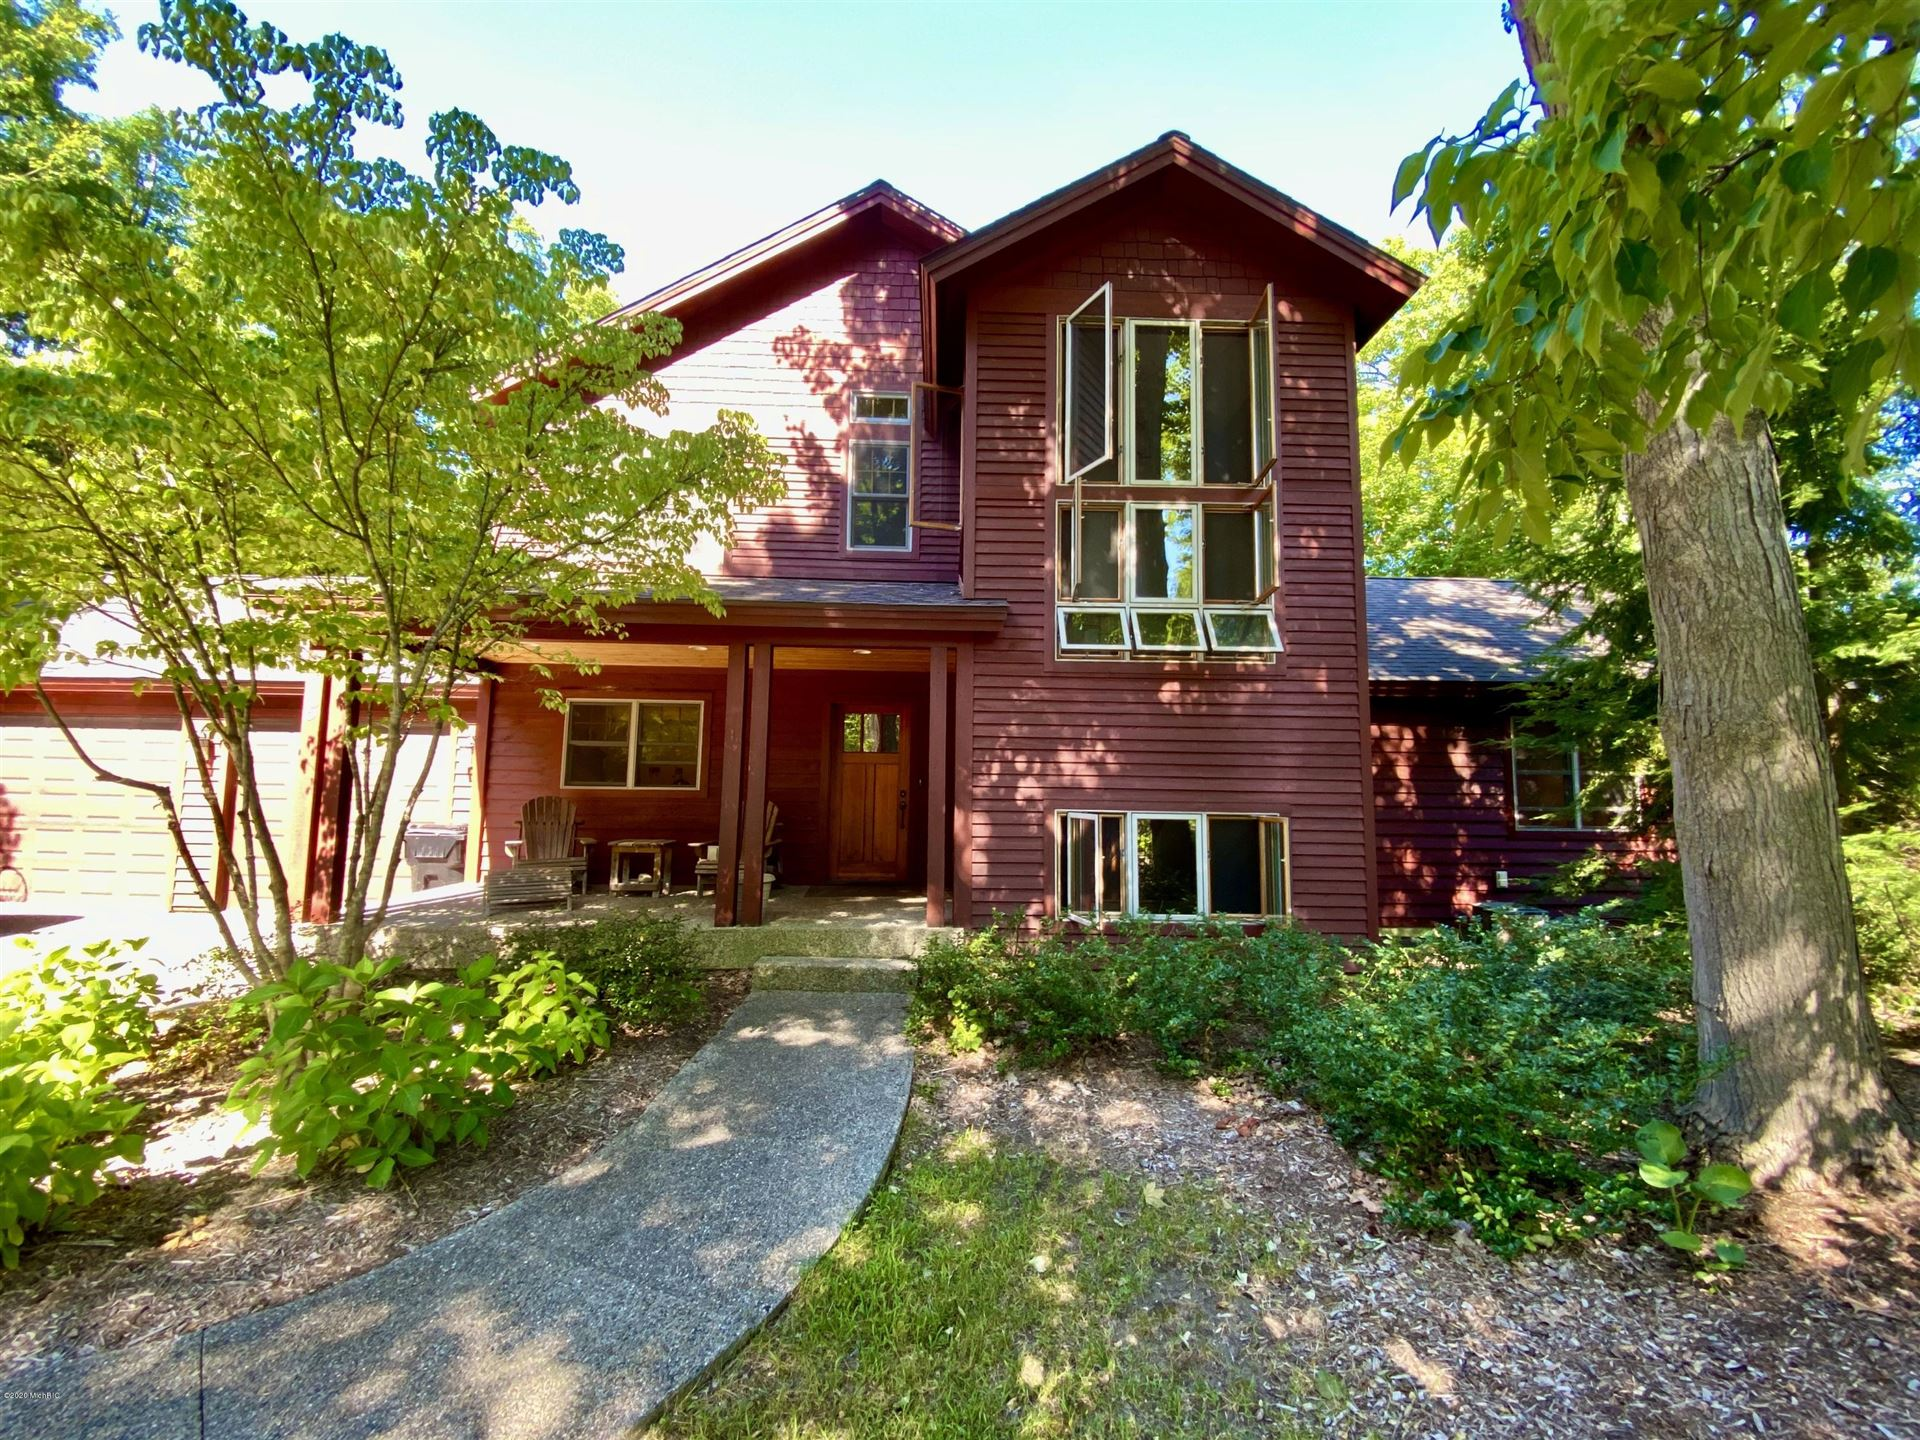 975 Ridgeview Lane, Saugatuck, MI 49453 - MLS#: 20035500